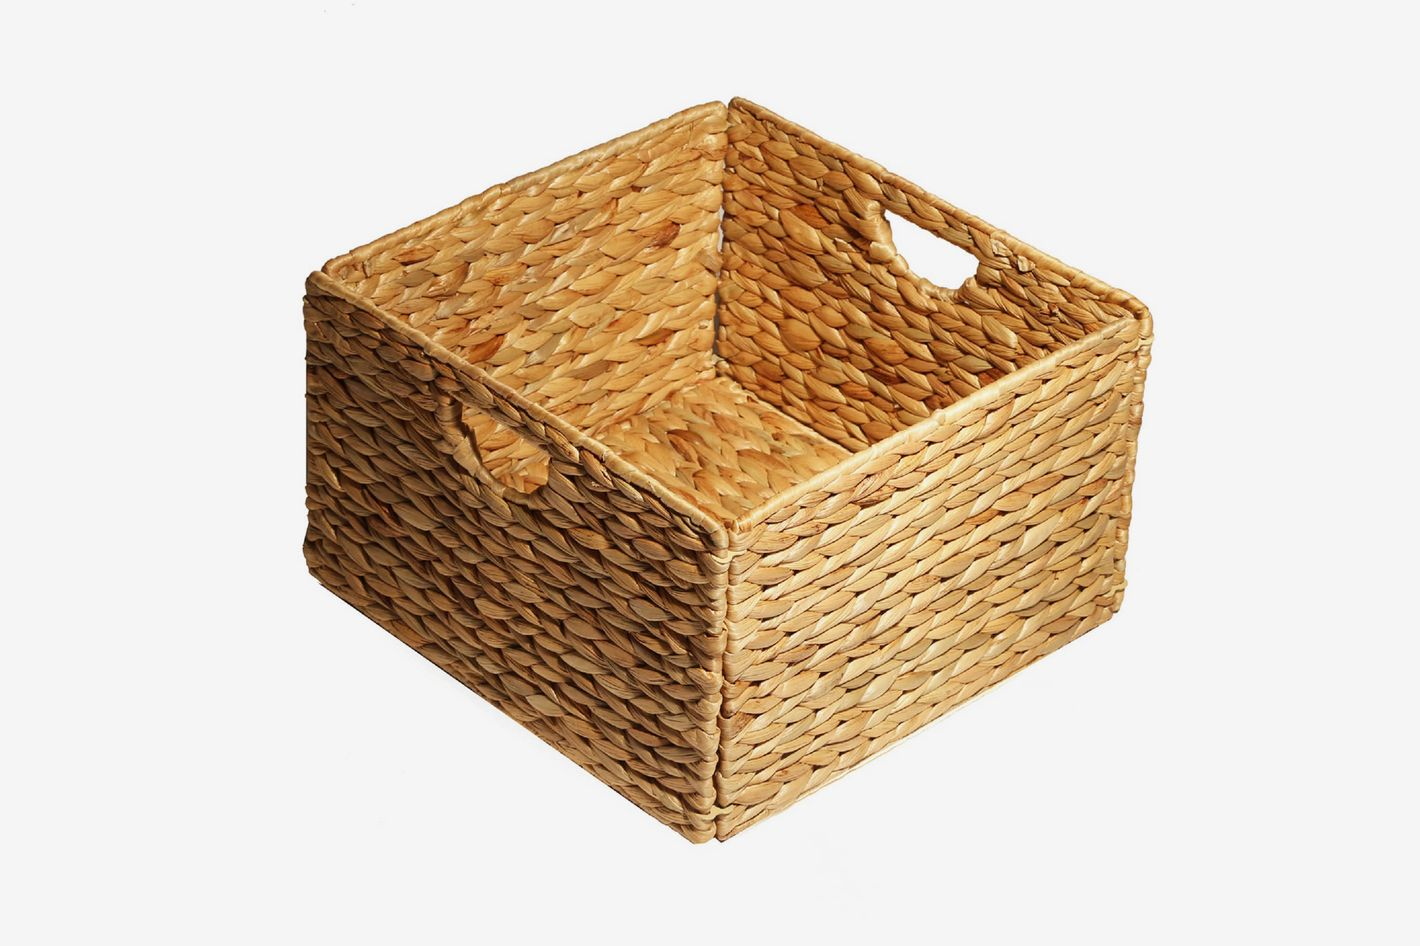 Seville Classics Woven Hyacinth 2-Pack Storage Cube Basket at Bed Bath u0026 Beyond & 23 Wicker Storage Baskets That Look Like Decor - 2018